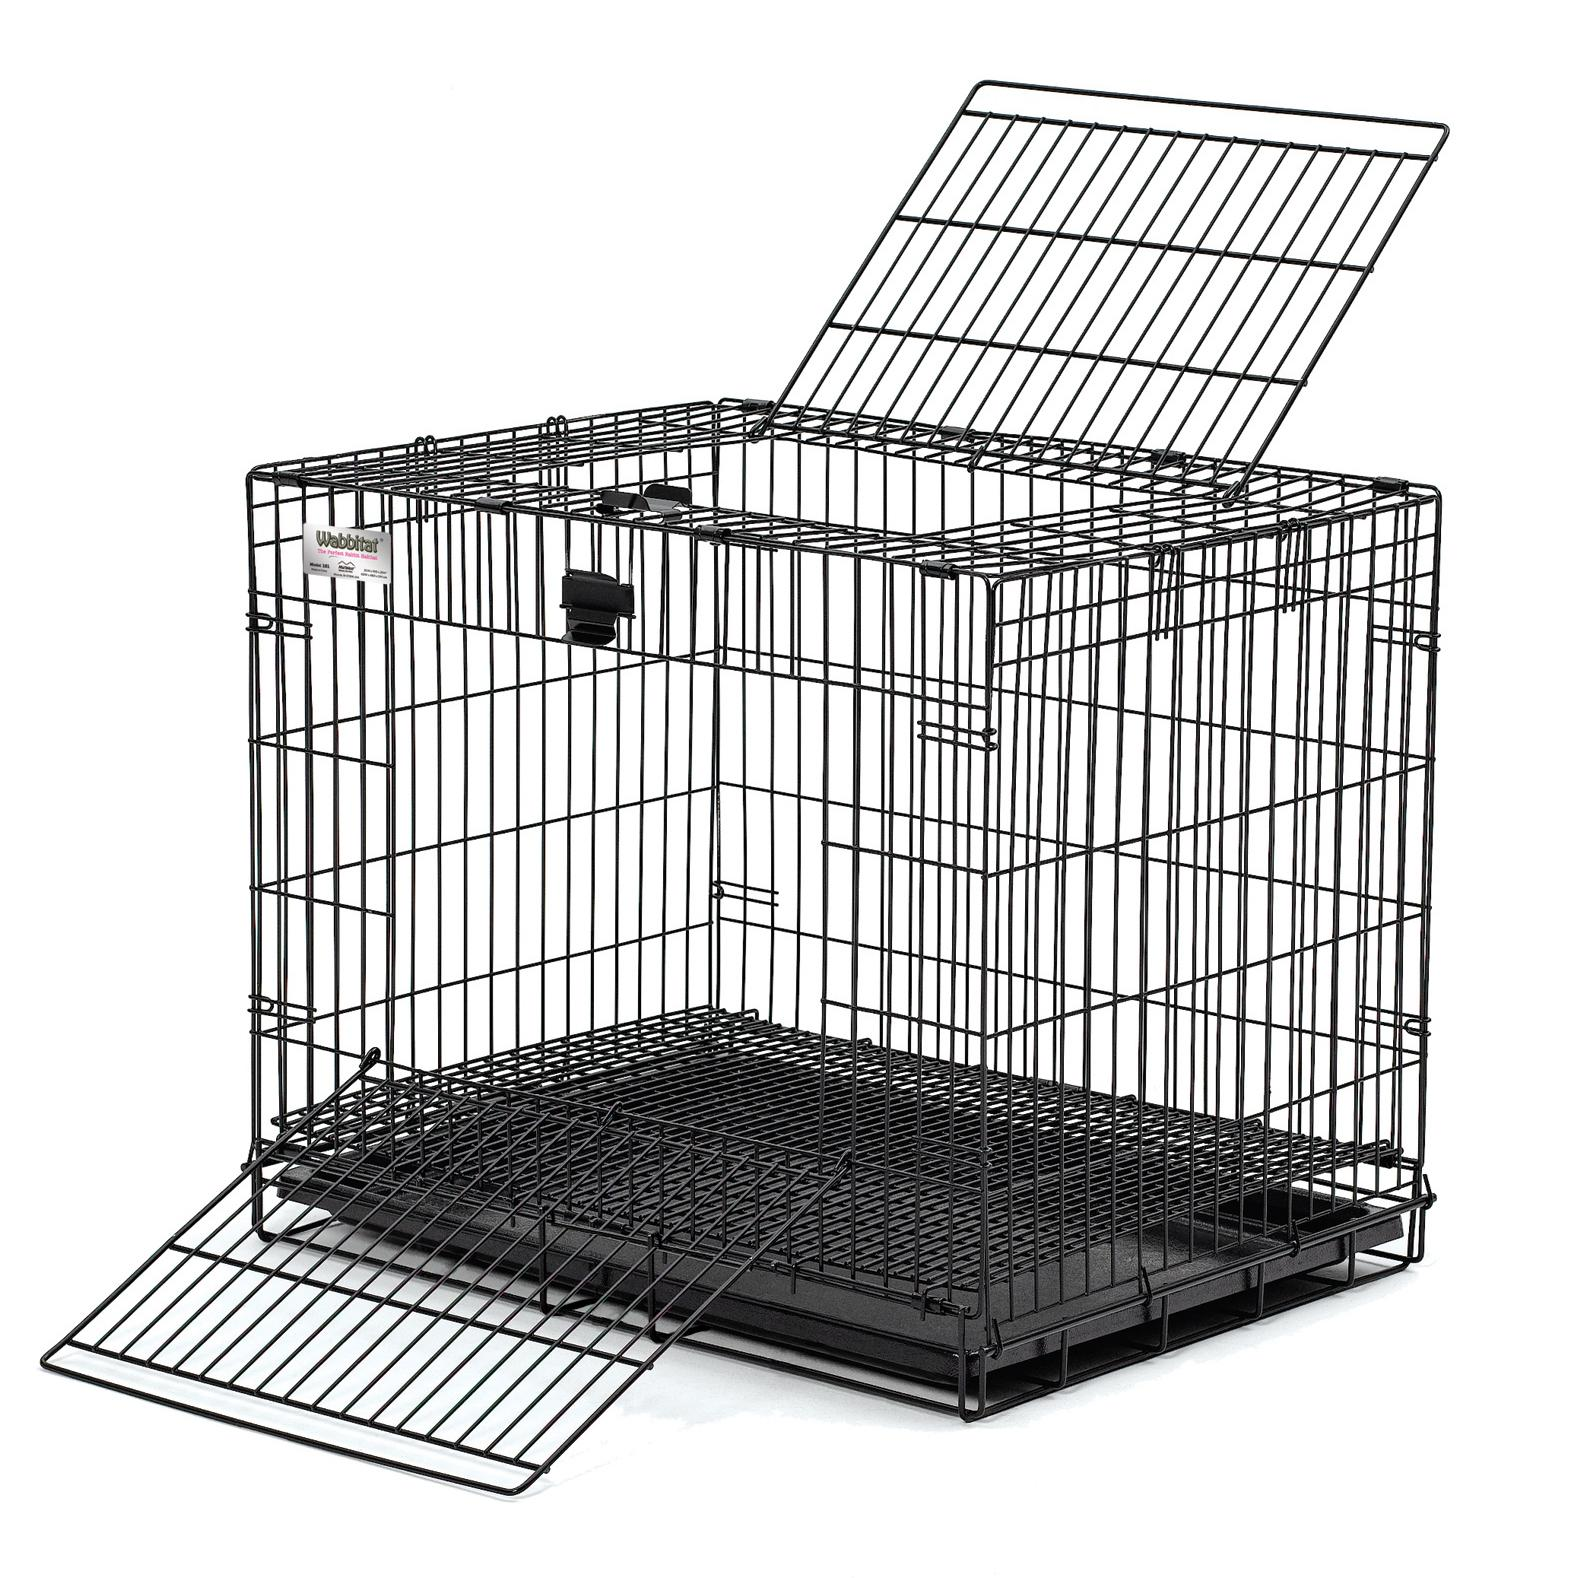 vector royalty free Midwest wabbitat folding . Cage clipart rabbit cage.